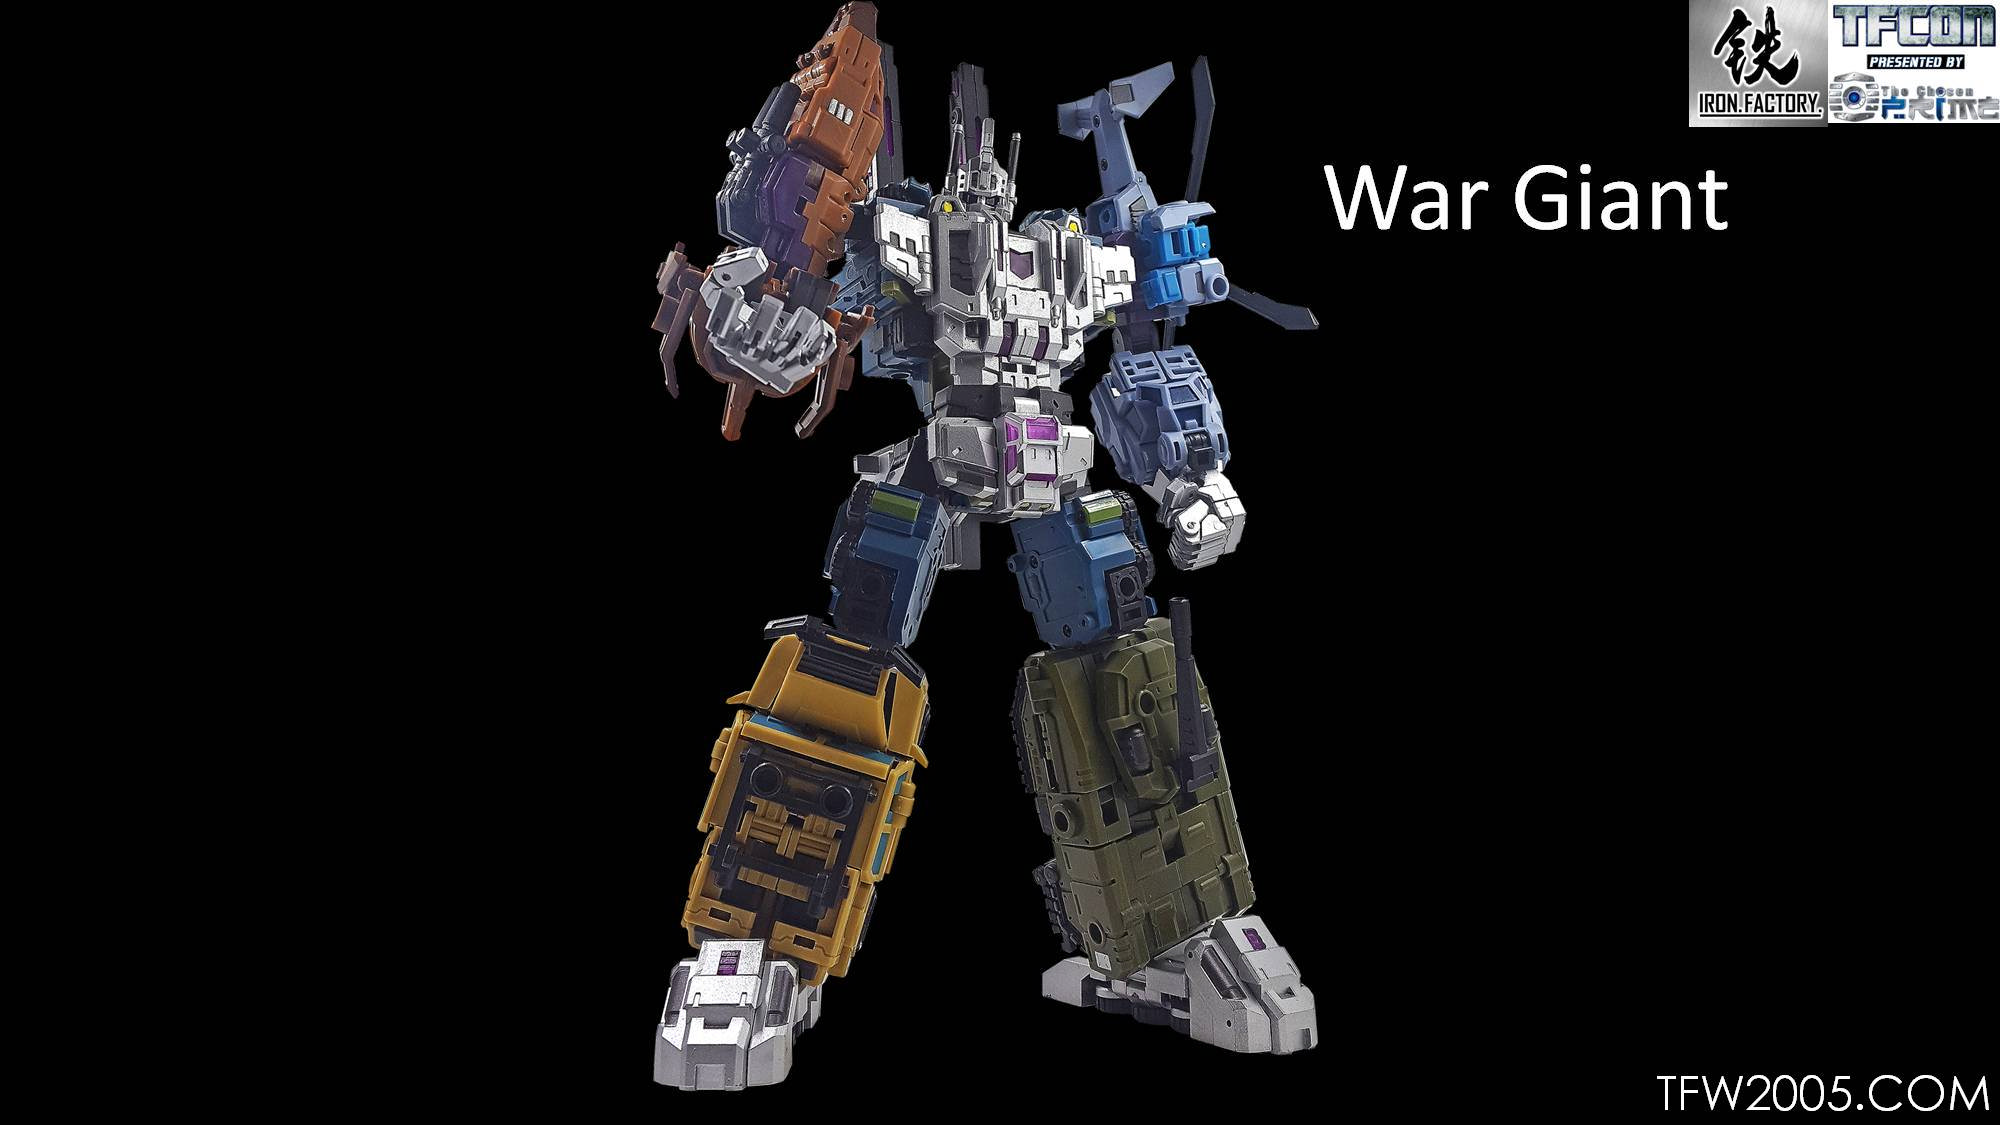 TFcon-2017-3rd-Party-074.jpg